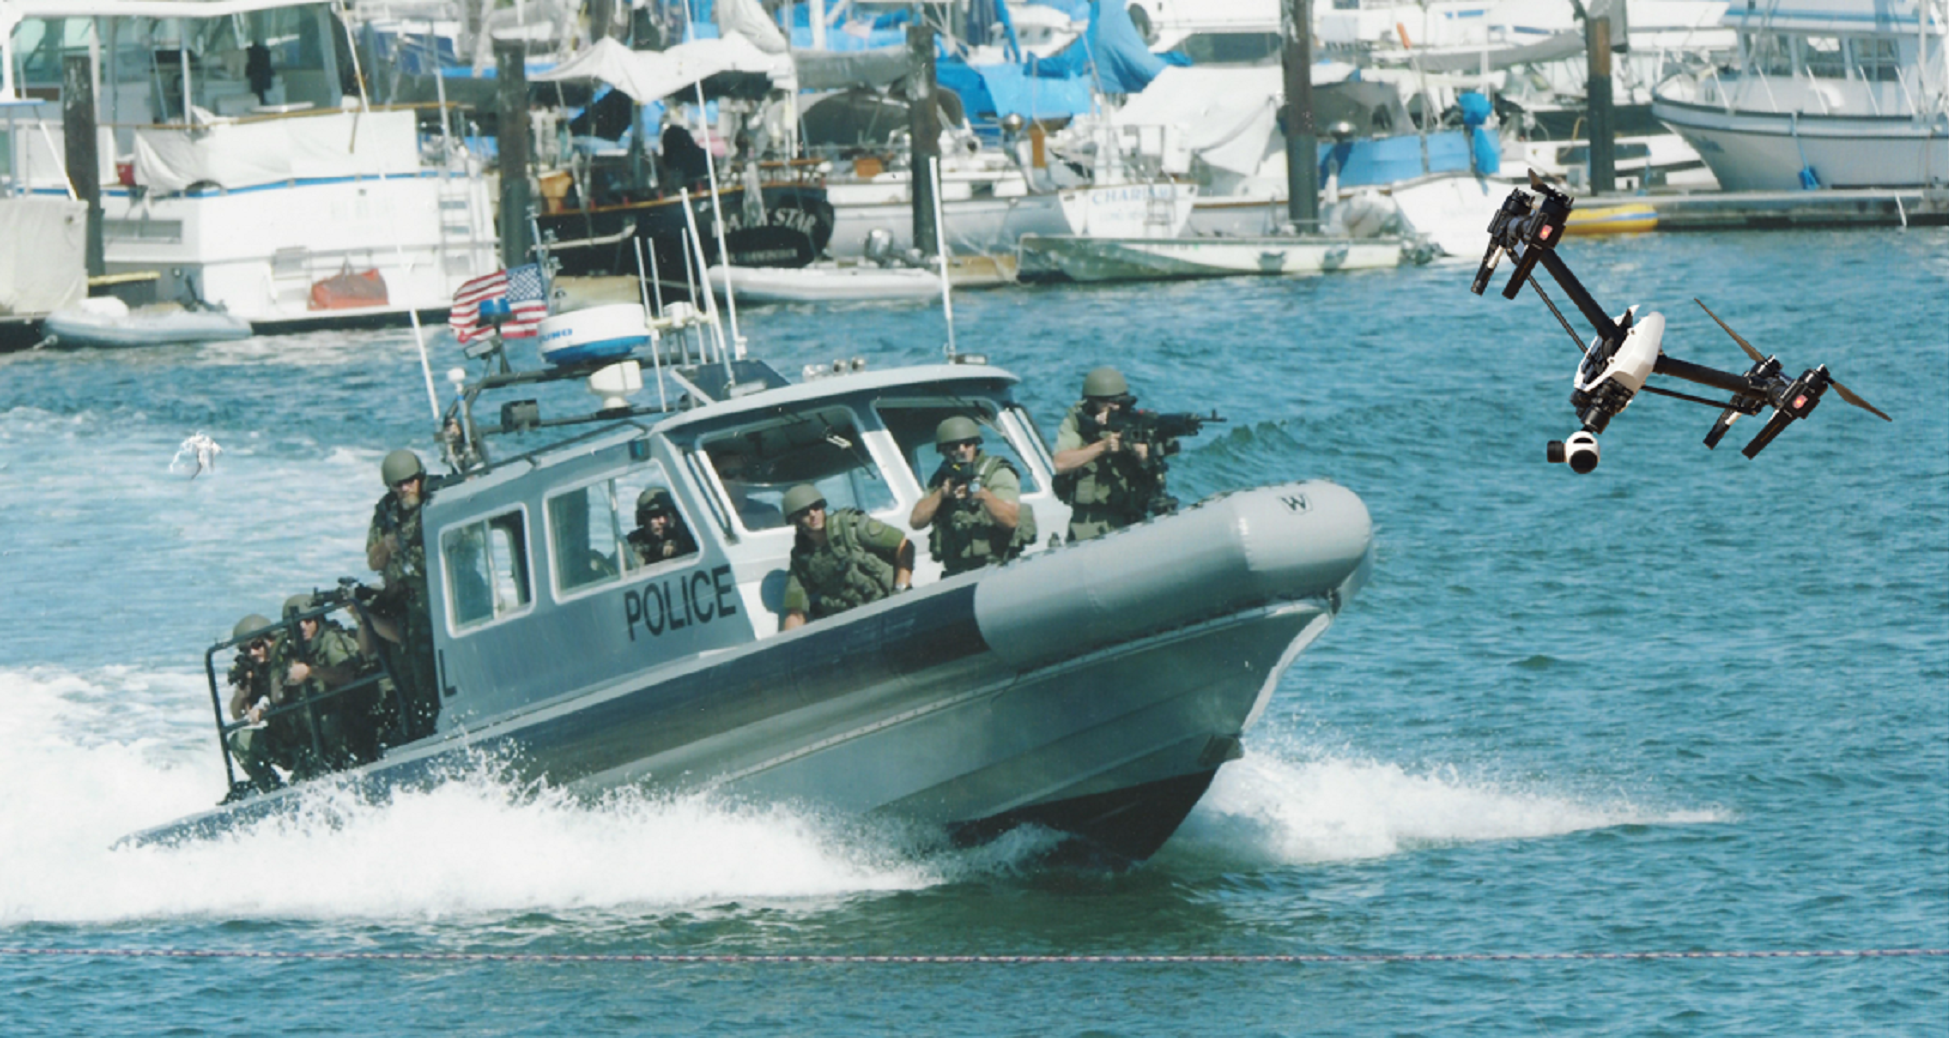 Police-Boat-with-Drone